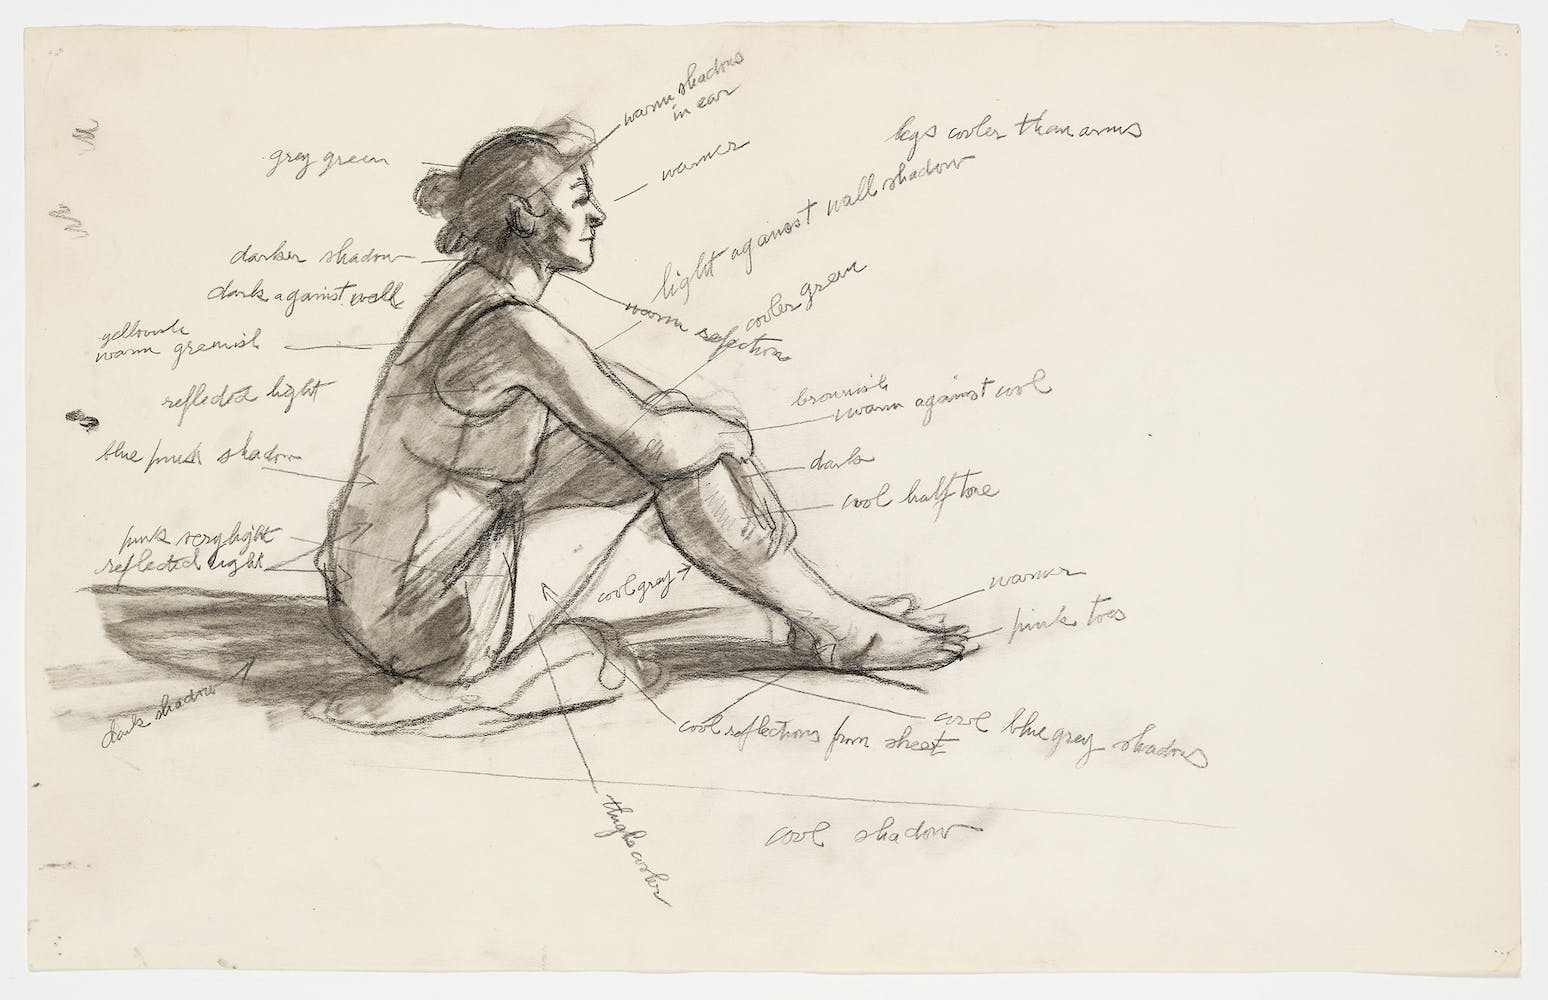 Edward Hopper, Study for Morning Sun, 1952